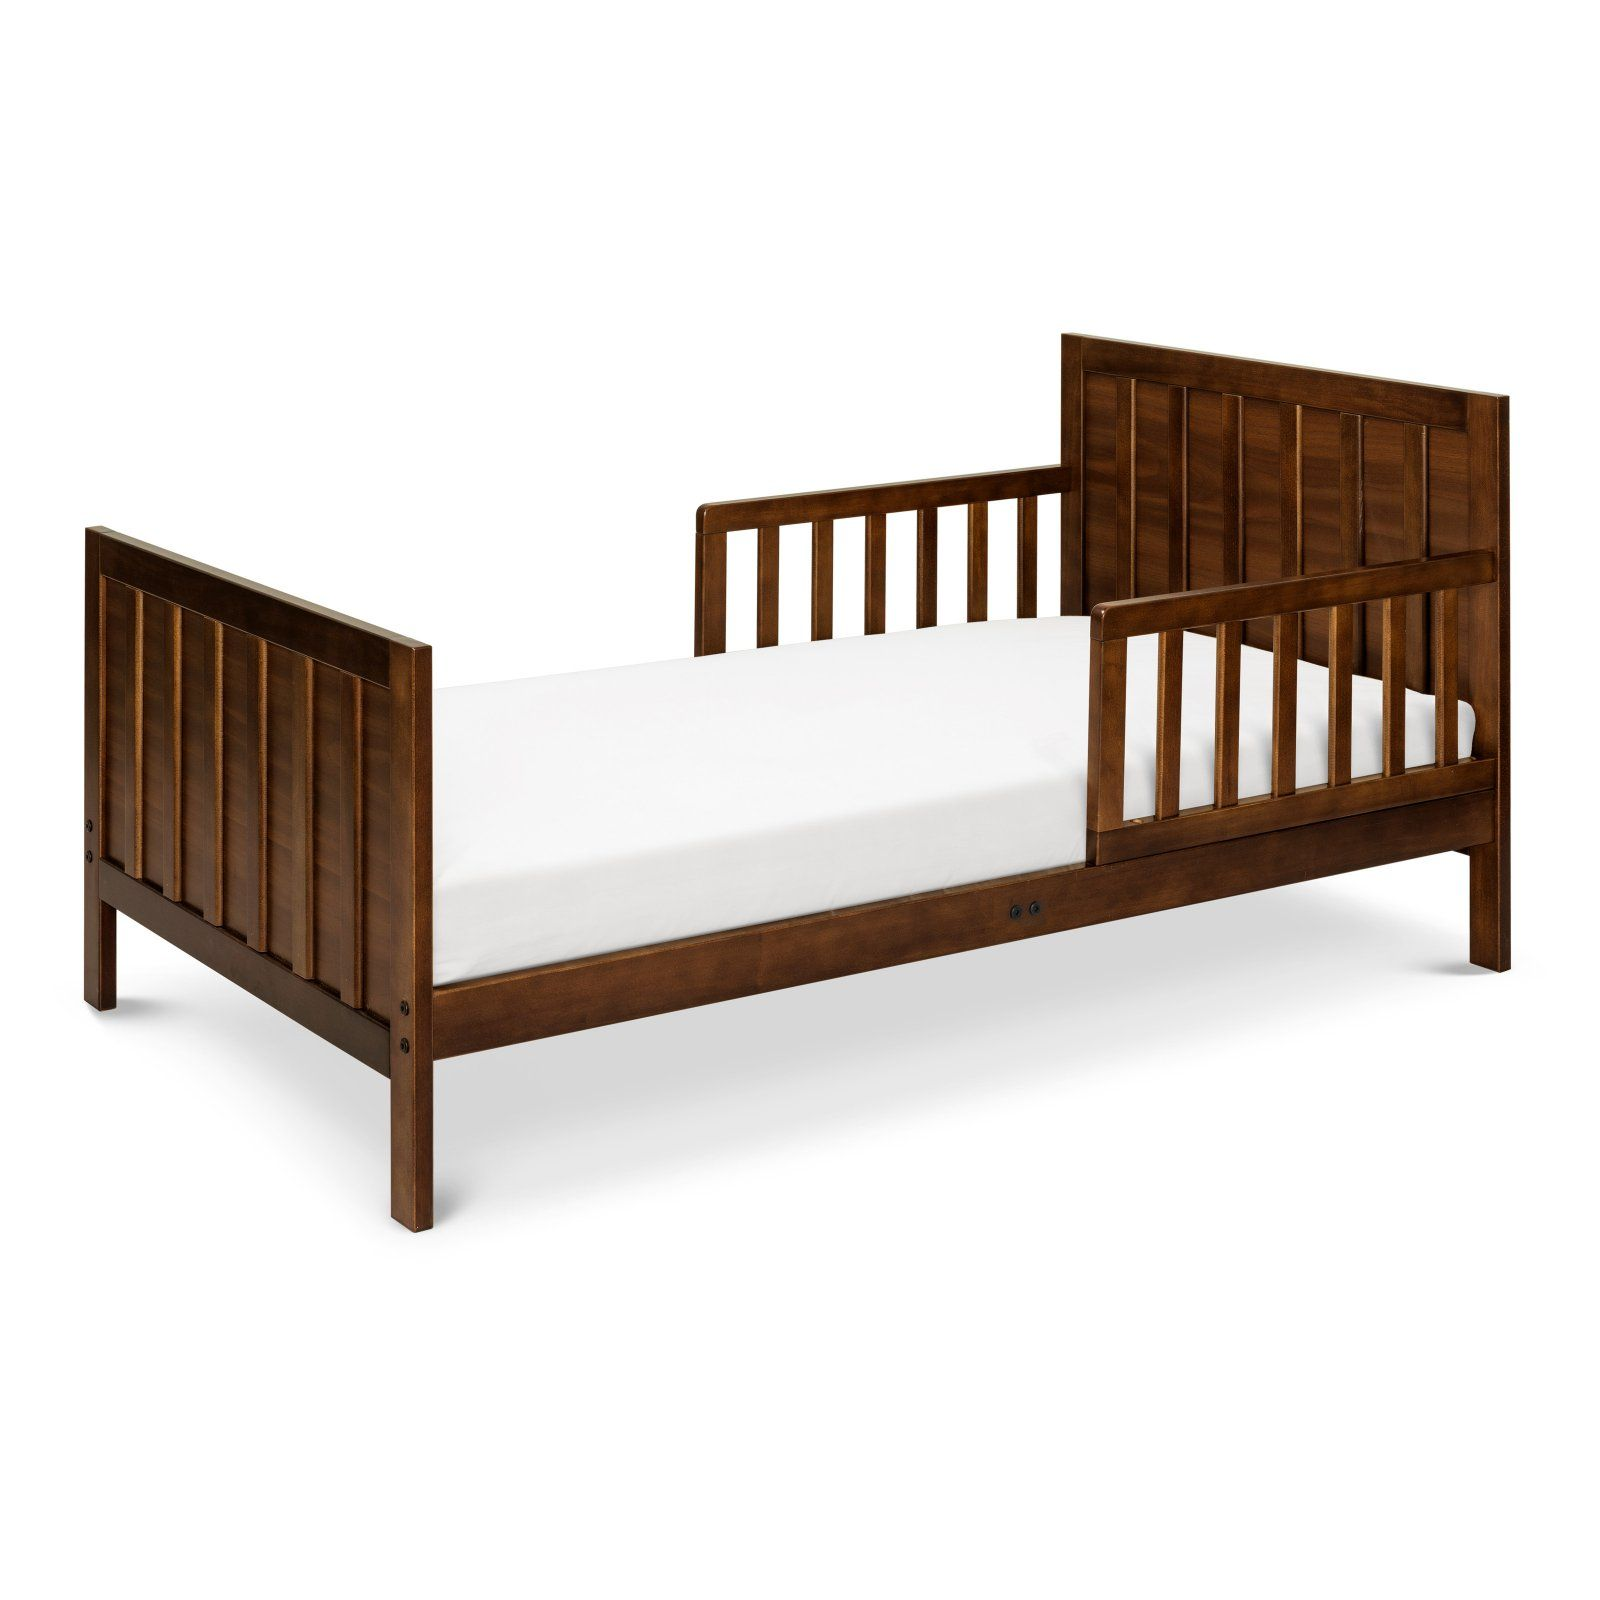 Carters By Davinci Benji Toddler Bed Products In 2019 Toddler Bed Kid Beds Bed